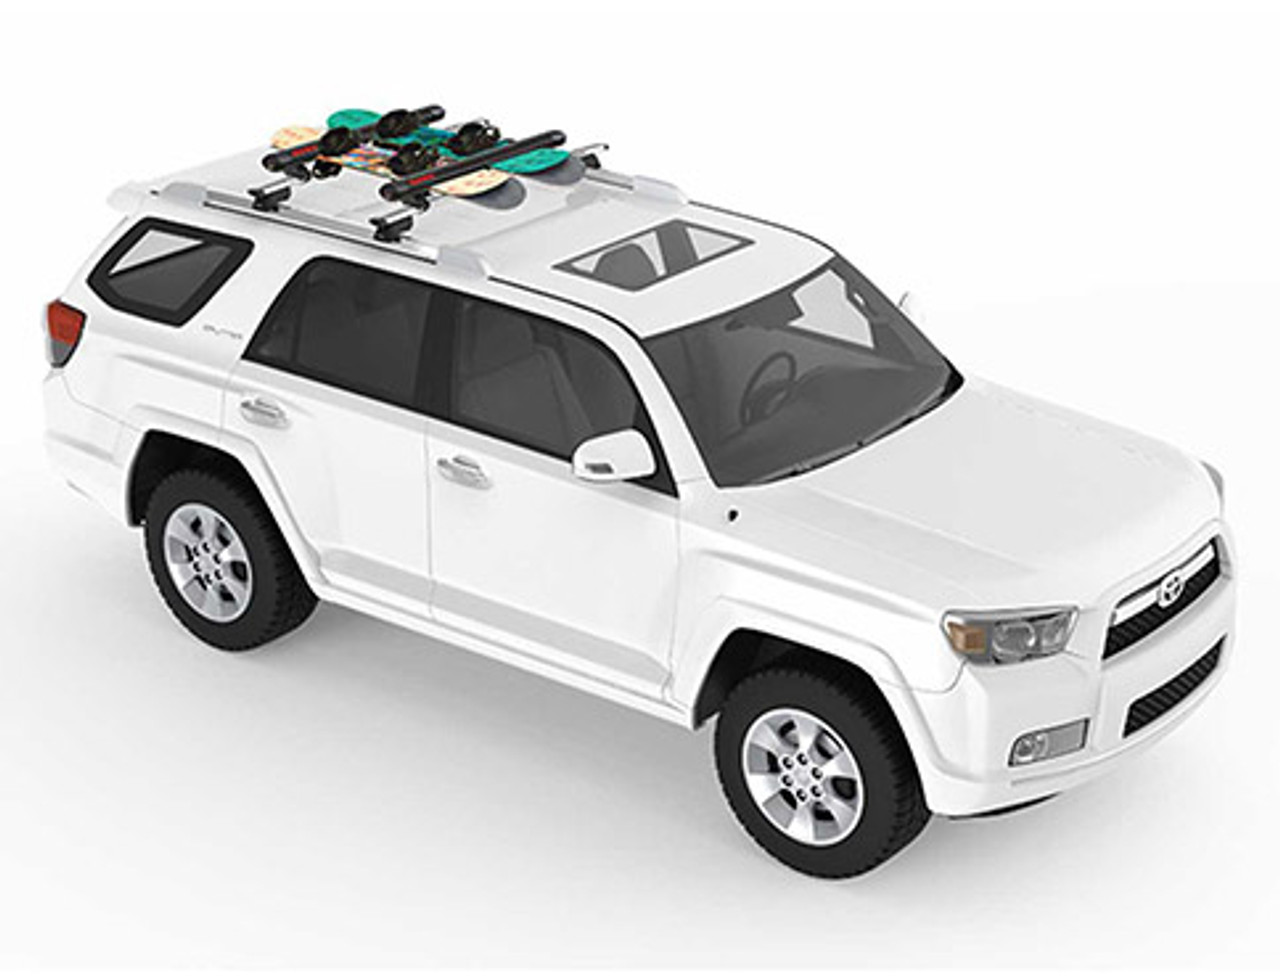 Yakima FatCat 6 EVO - Ski and Snowboard mounts for Toyota vehicles